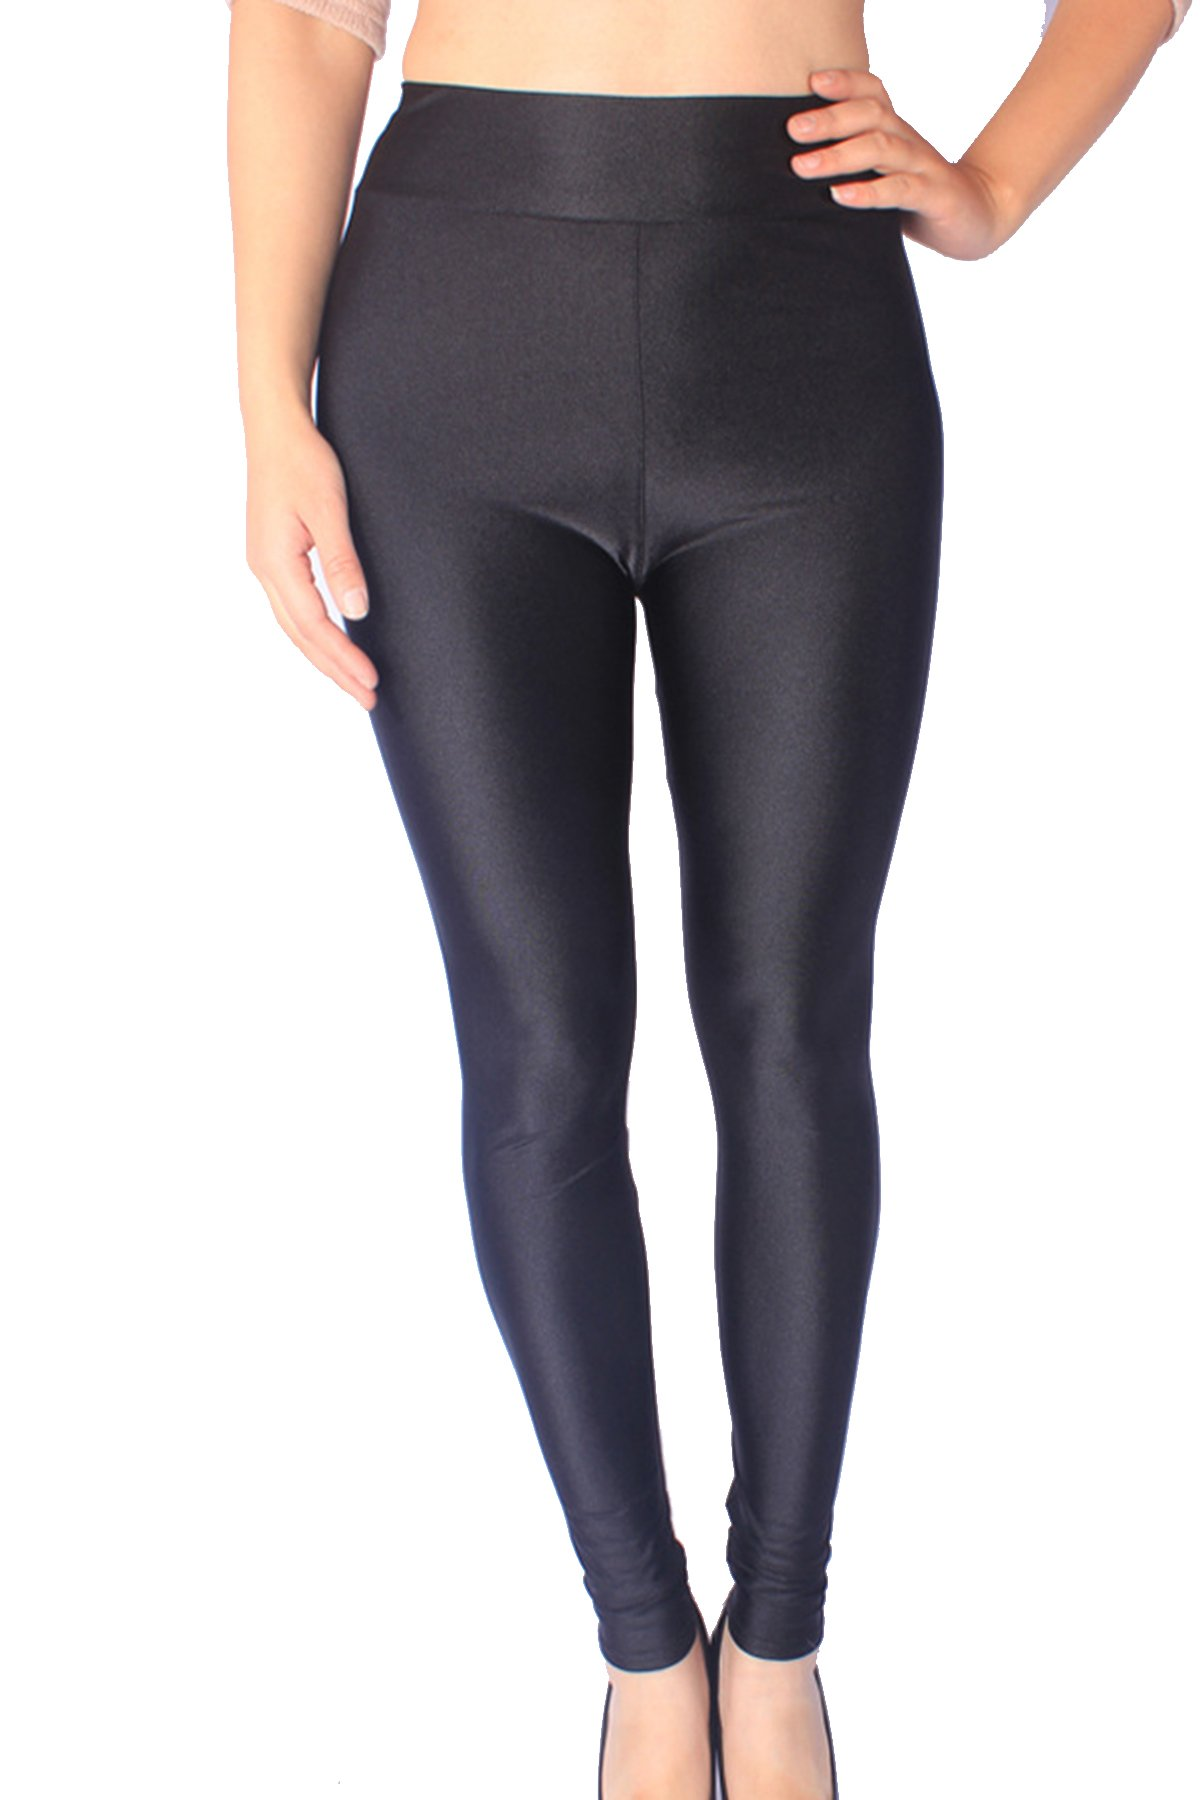 Minghe Ladies High Waist Thin Leggings Strechy Full Length Pants Plus Size Black 3X-Large